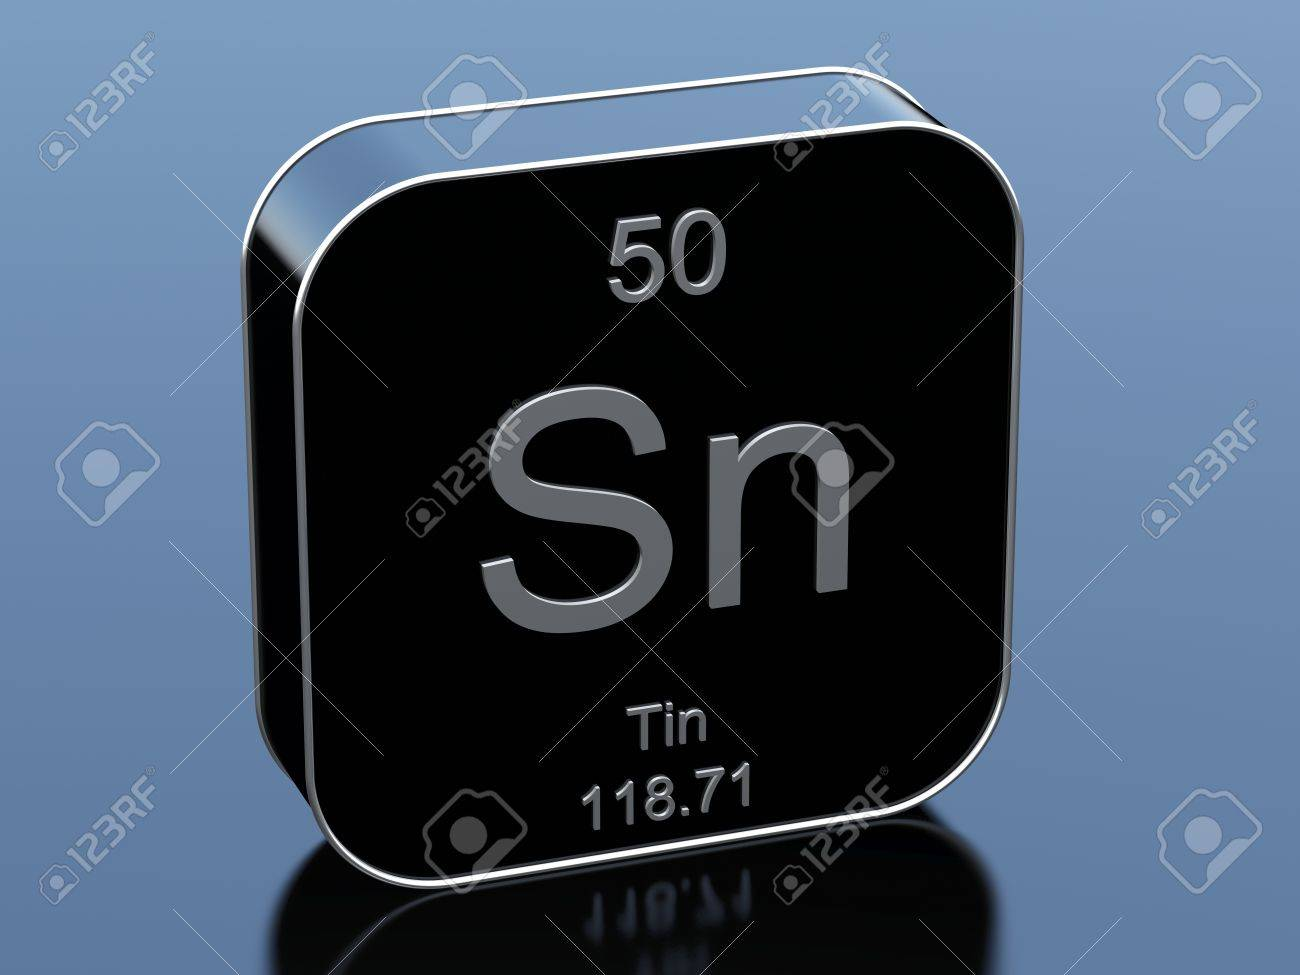 Tin from periodic table stock photo picture and royalty free tin from periodic table stock photo 71643815 buycottarizona